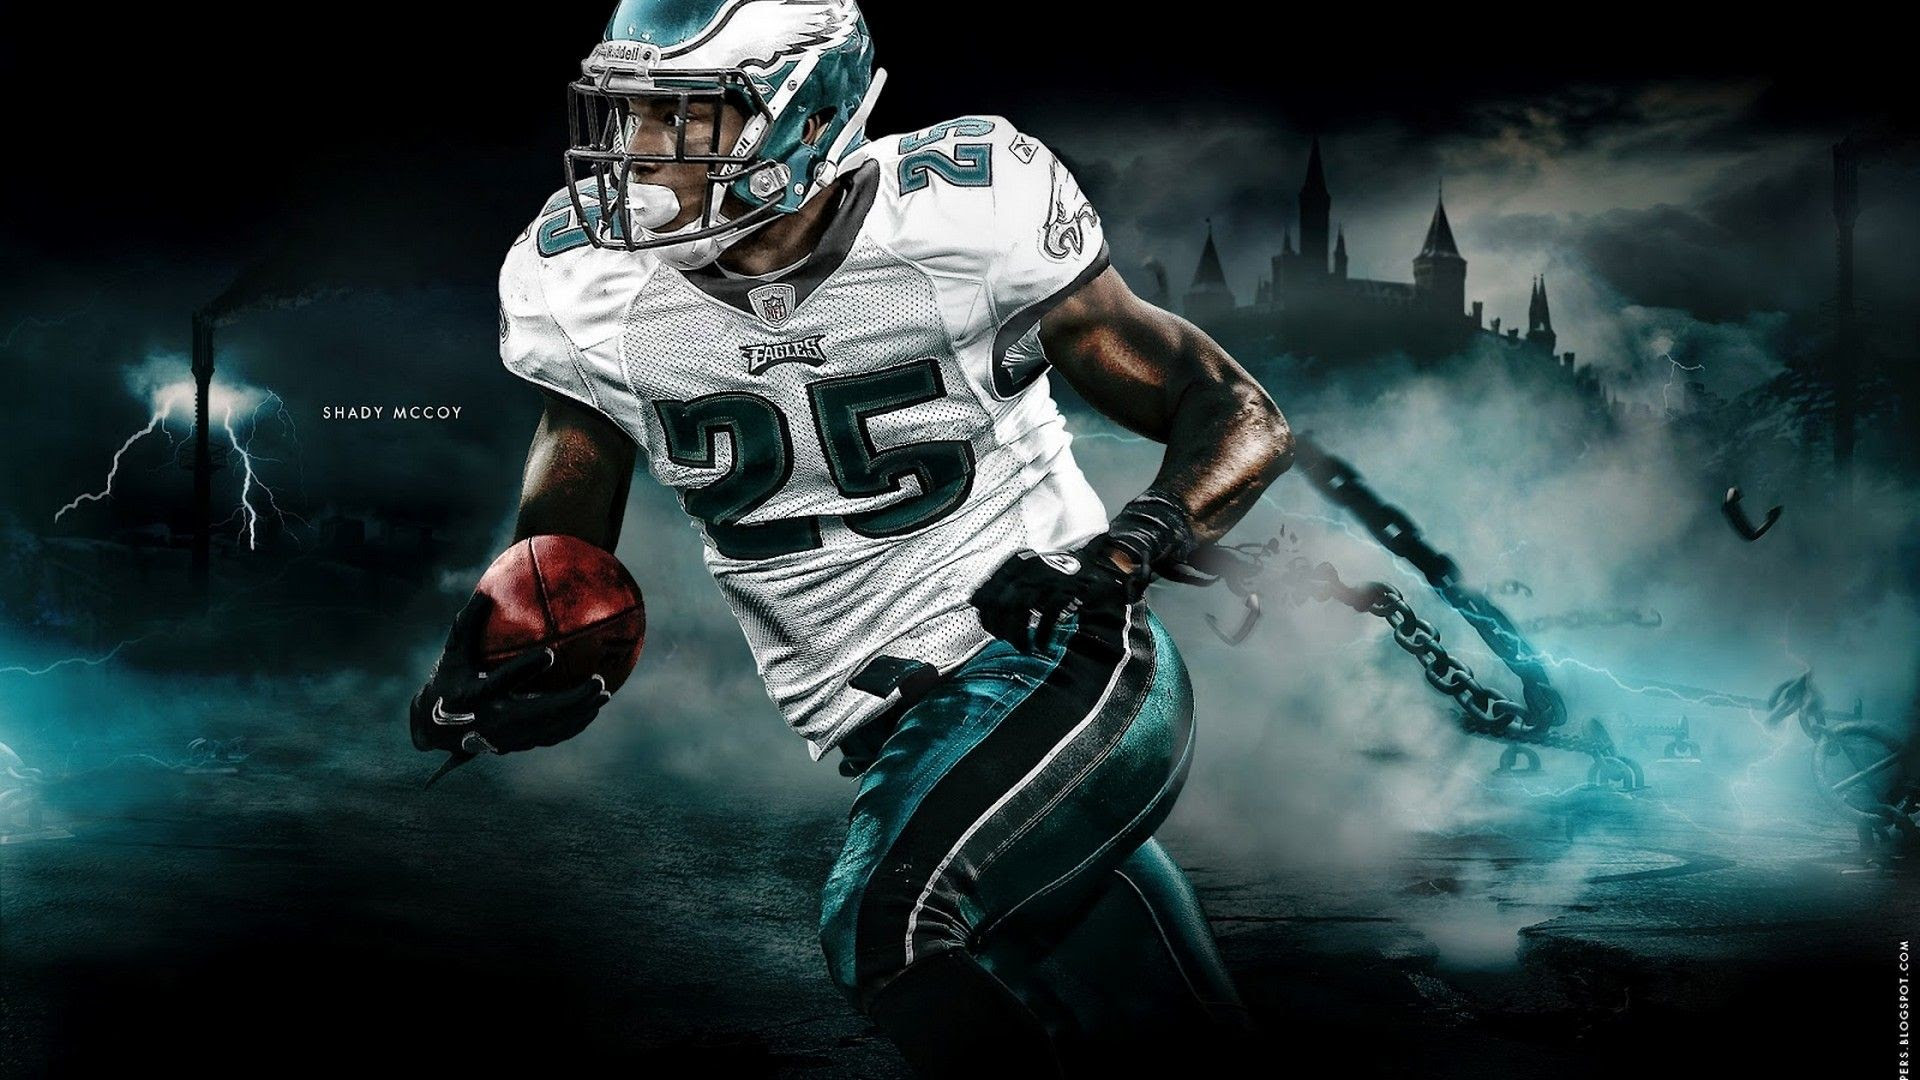 American Football Player Wallpaper (73+ images)